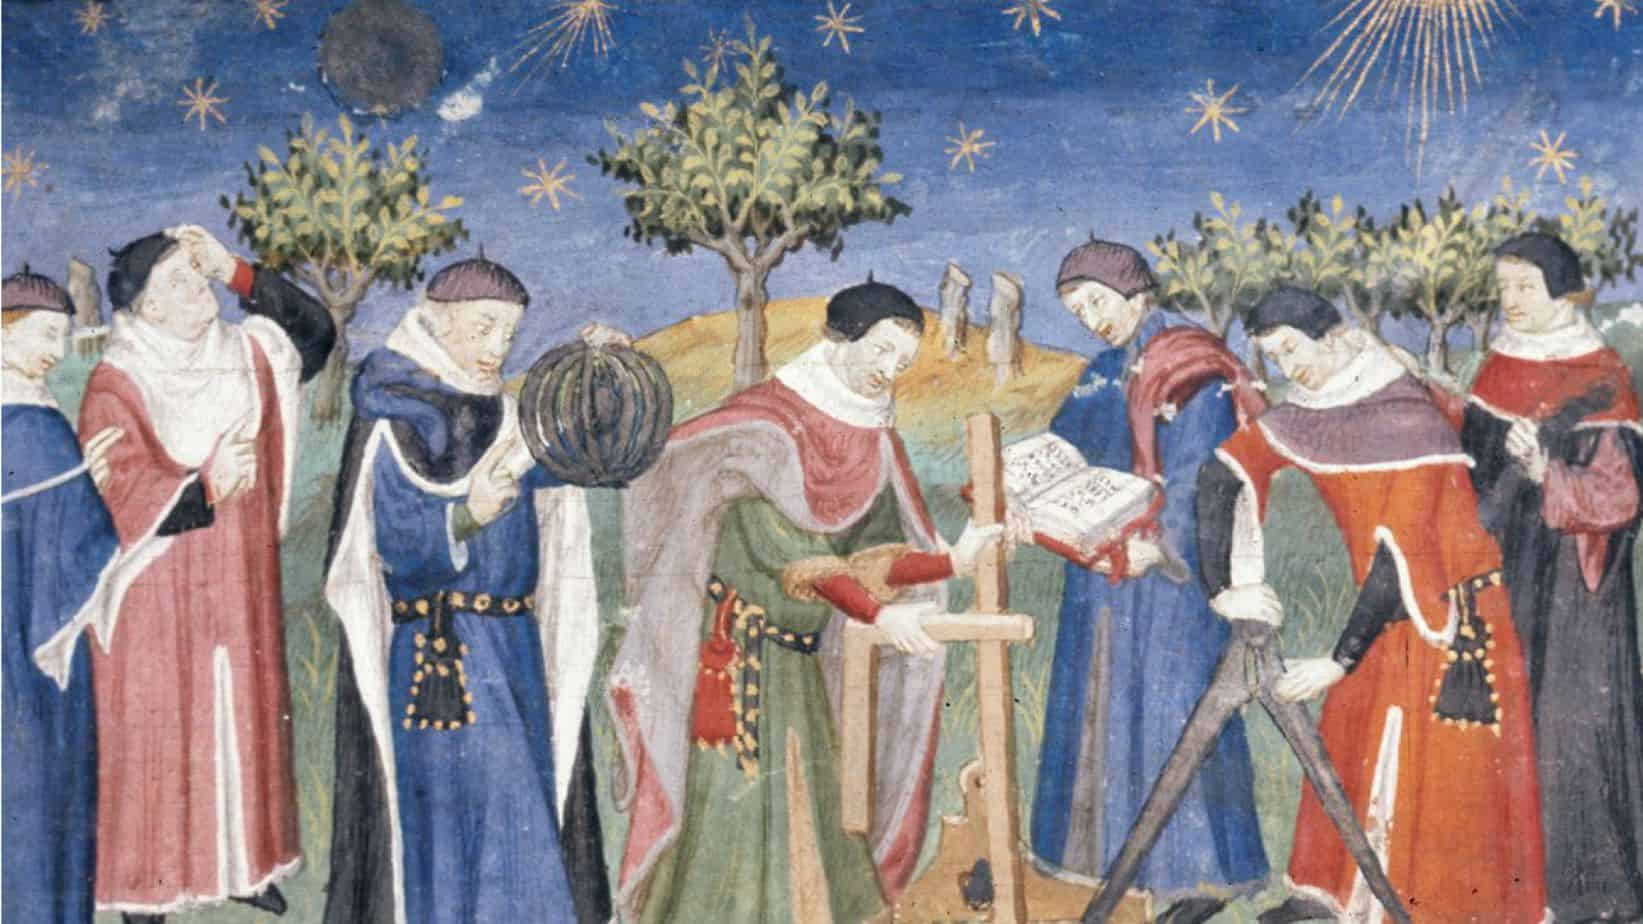 Landscape with Clerks Studying Astronomy and Geometry from the early 15th century